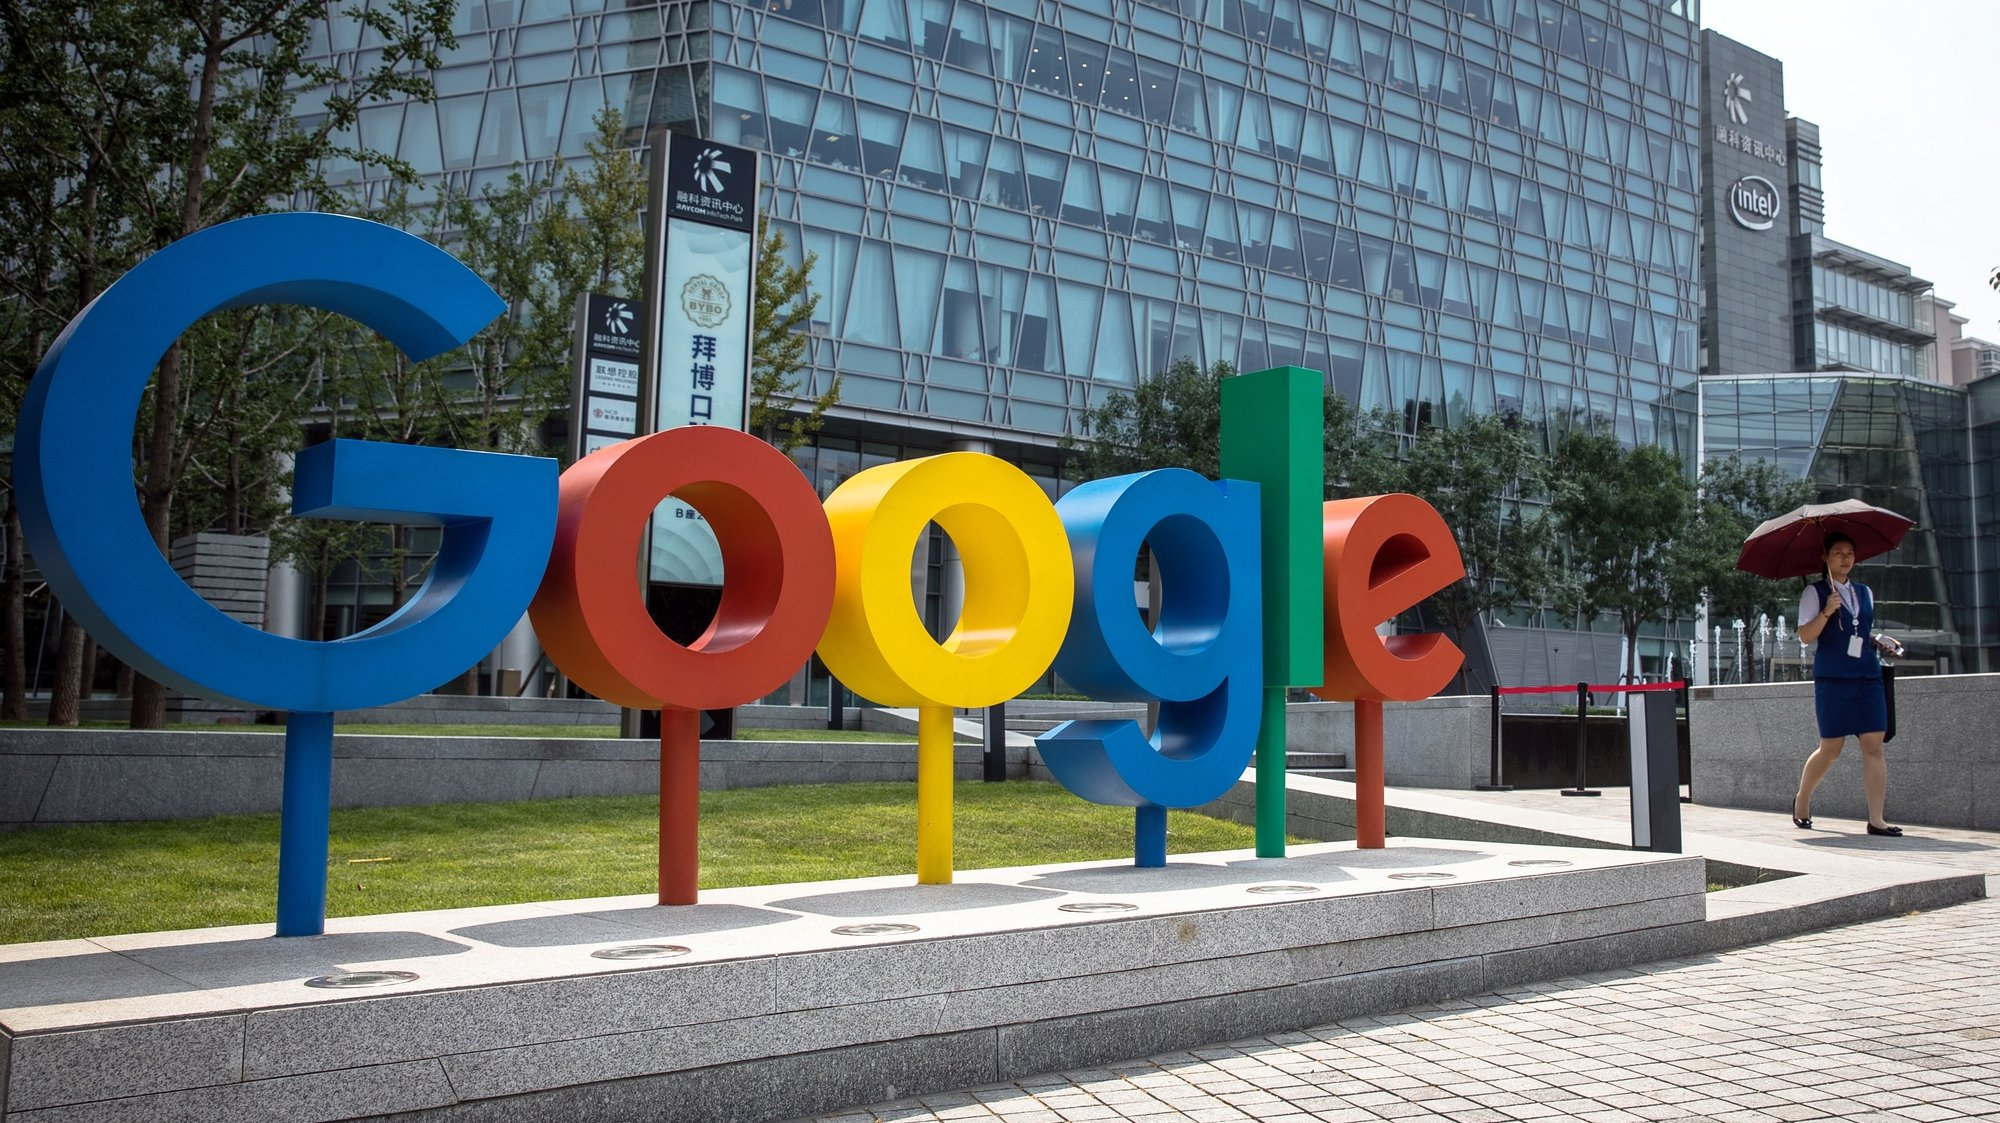 epa08979756 (FILE) - A Chinese woman walks past a 'Google' brand name and logo, near the Google office in Beijing, China, 03 August 2018 (reissued 01 January 2021). Alphabet, the parent company of internet giant Google, is due to publish their 4th quarter 2020 results on 02 January 2021.  EPA/ROMAN PILIPEY *** Local Caption *** 54599547